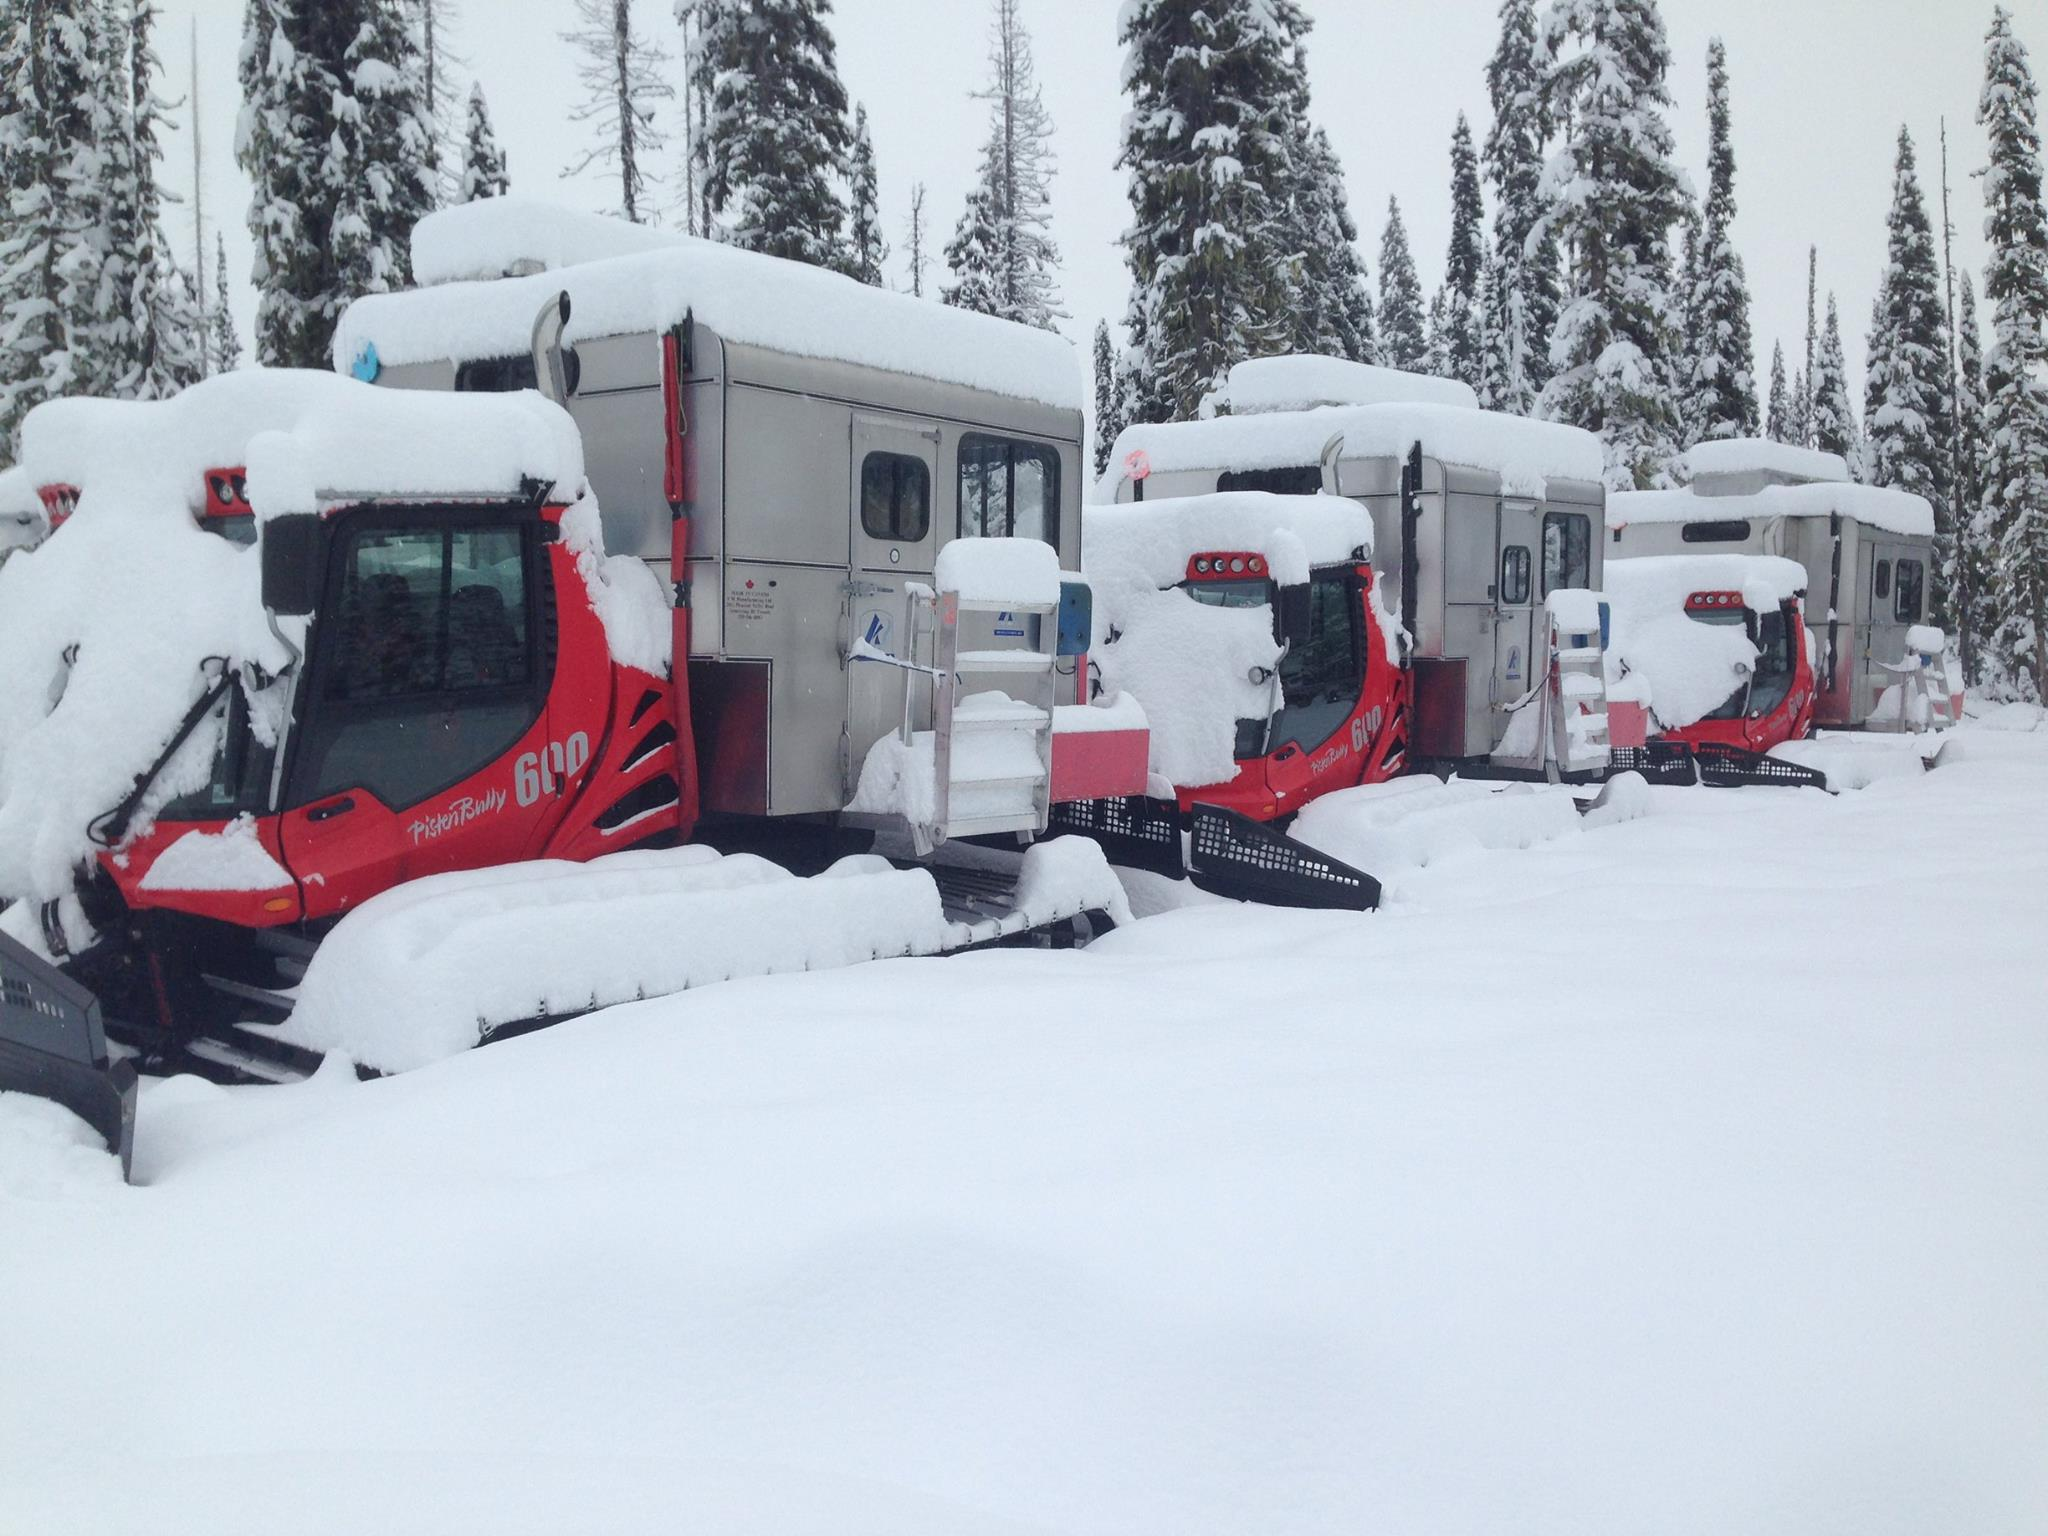 These Snowcats are waiting for you at K3 Catskiing